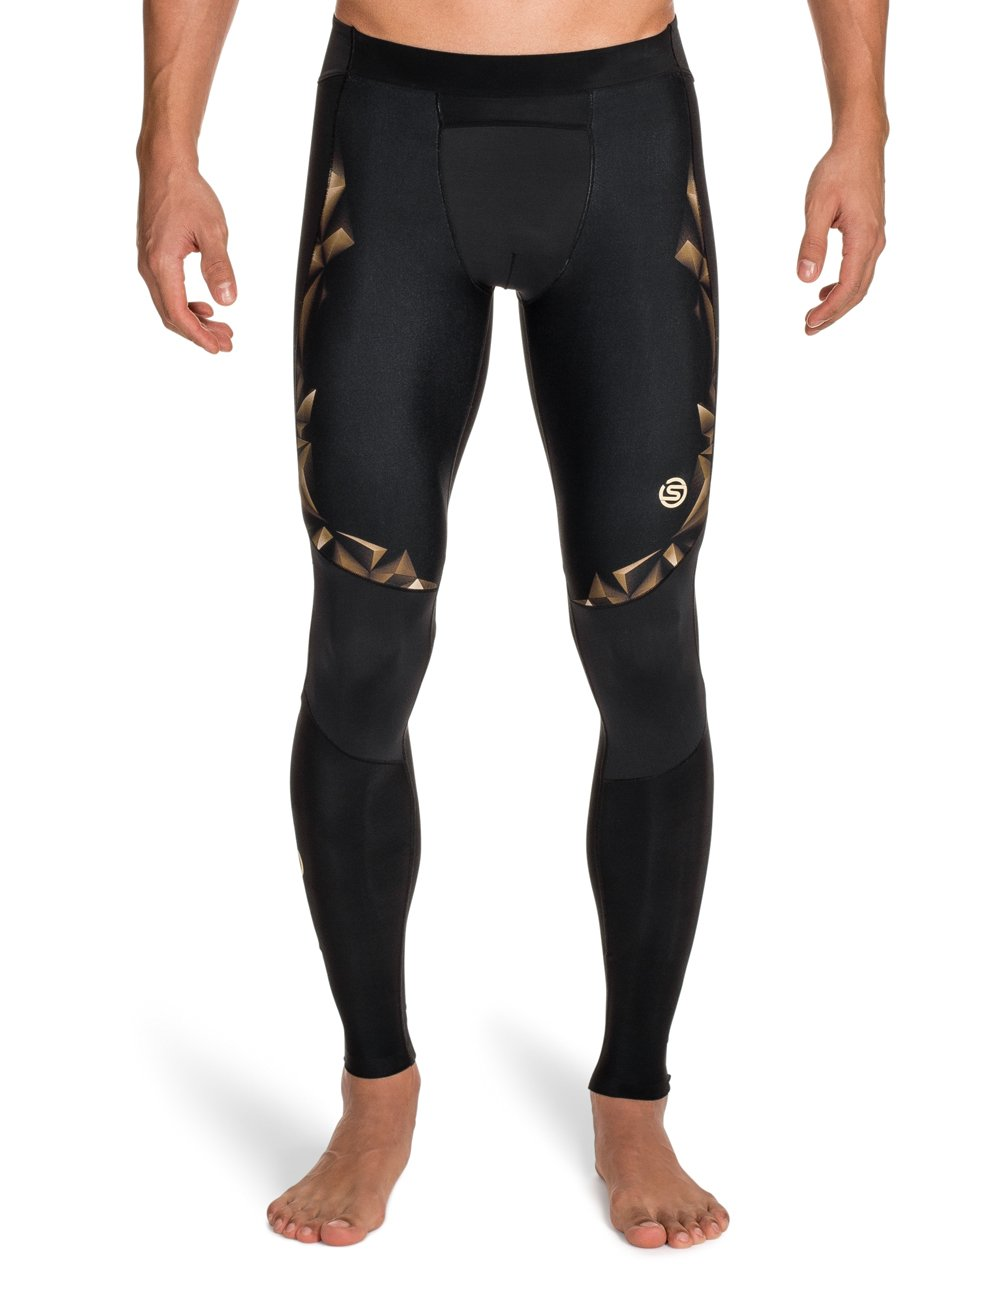 Skins Men's A400 Compression Long Tights, Black/Gold, XX-Large by Skins (Image #1)